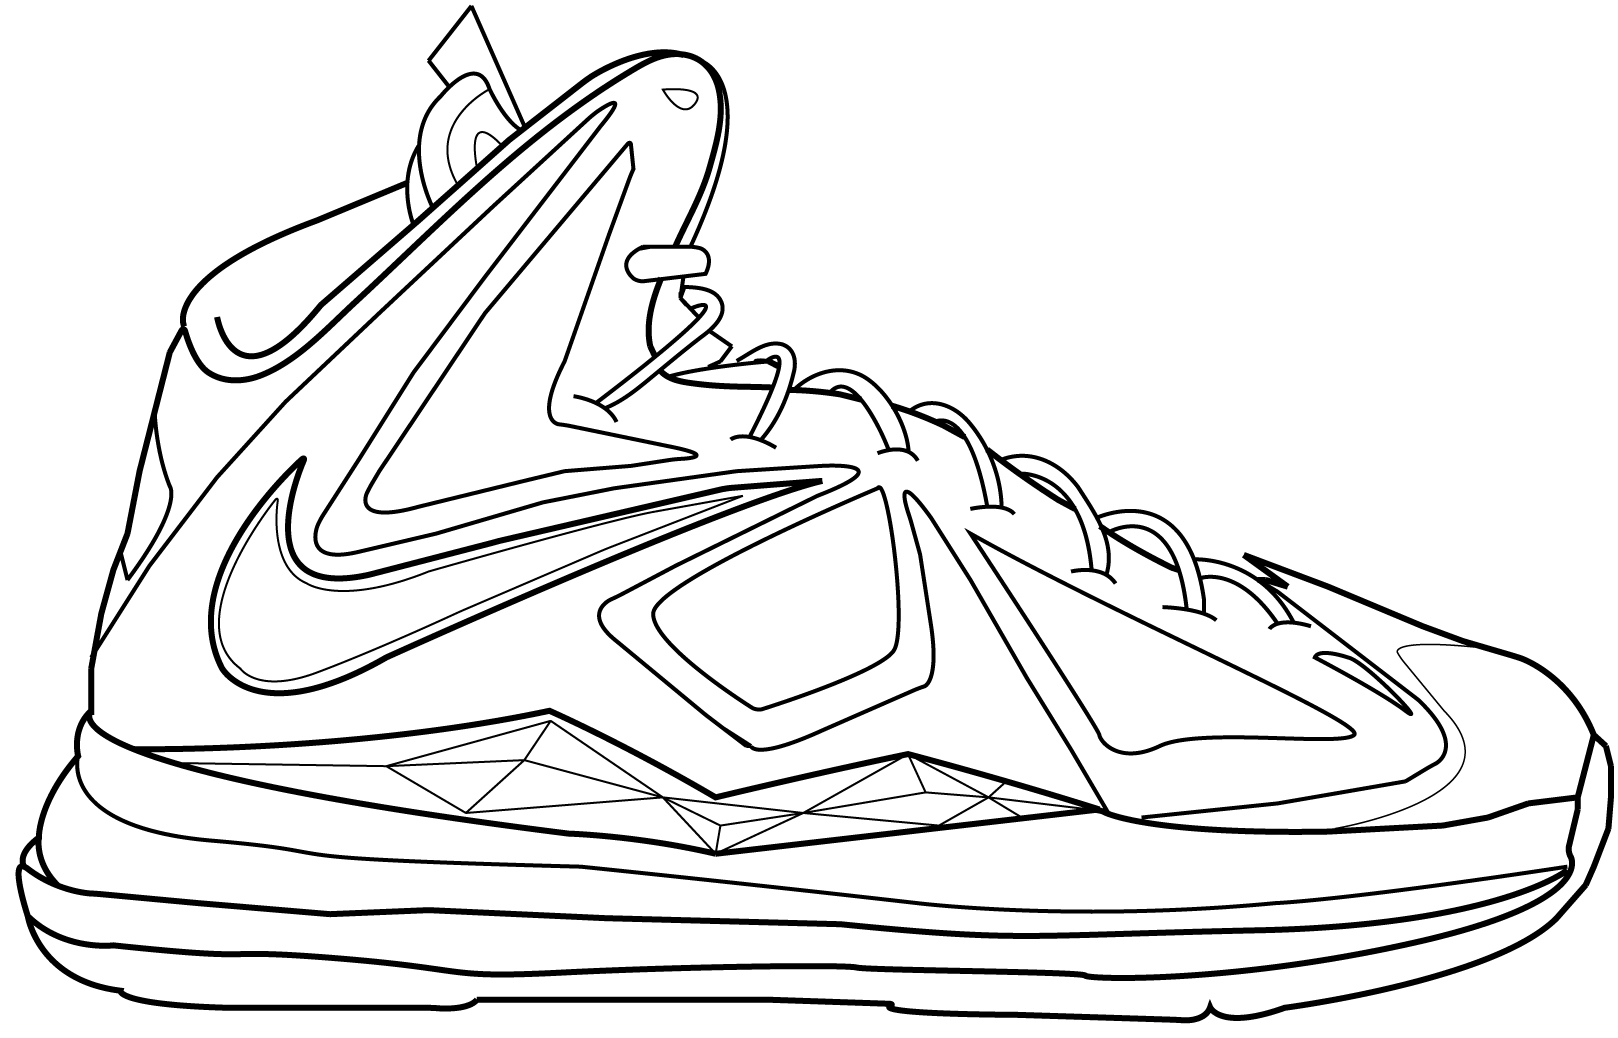 Lebron james shoes drawing at getdrawings free for personal 1618x1038 drawing lebron james shoes maxwellsz